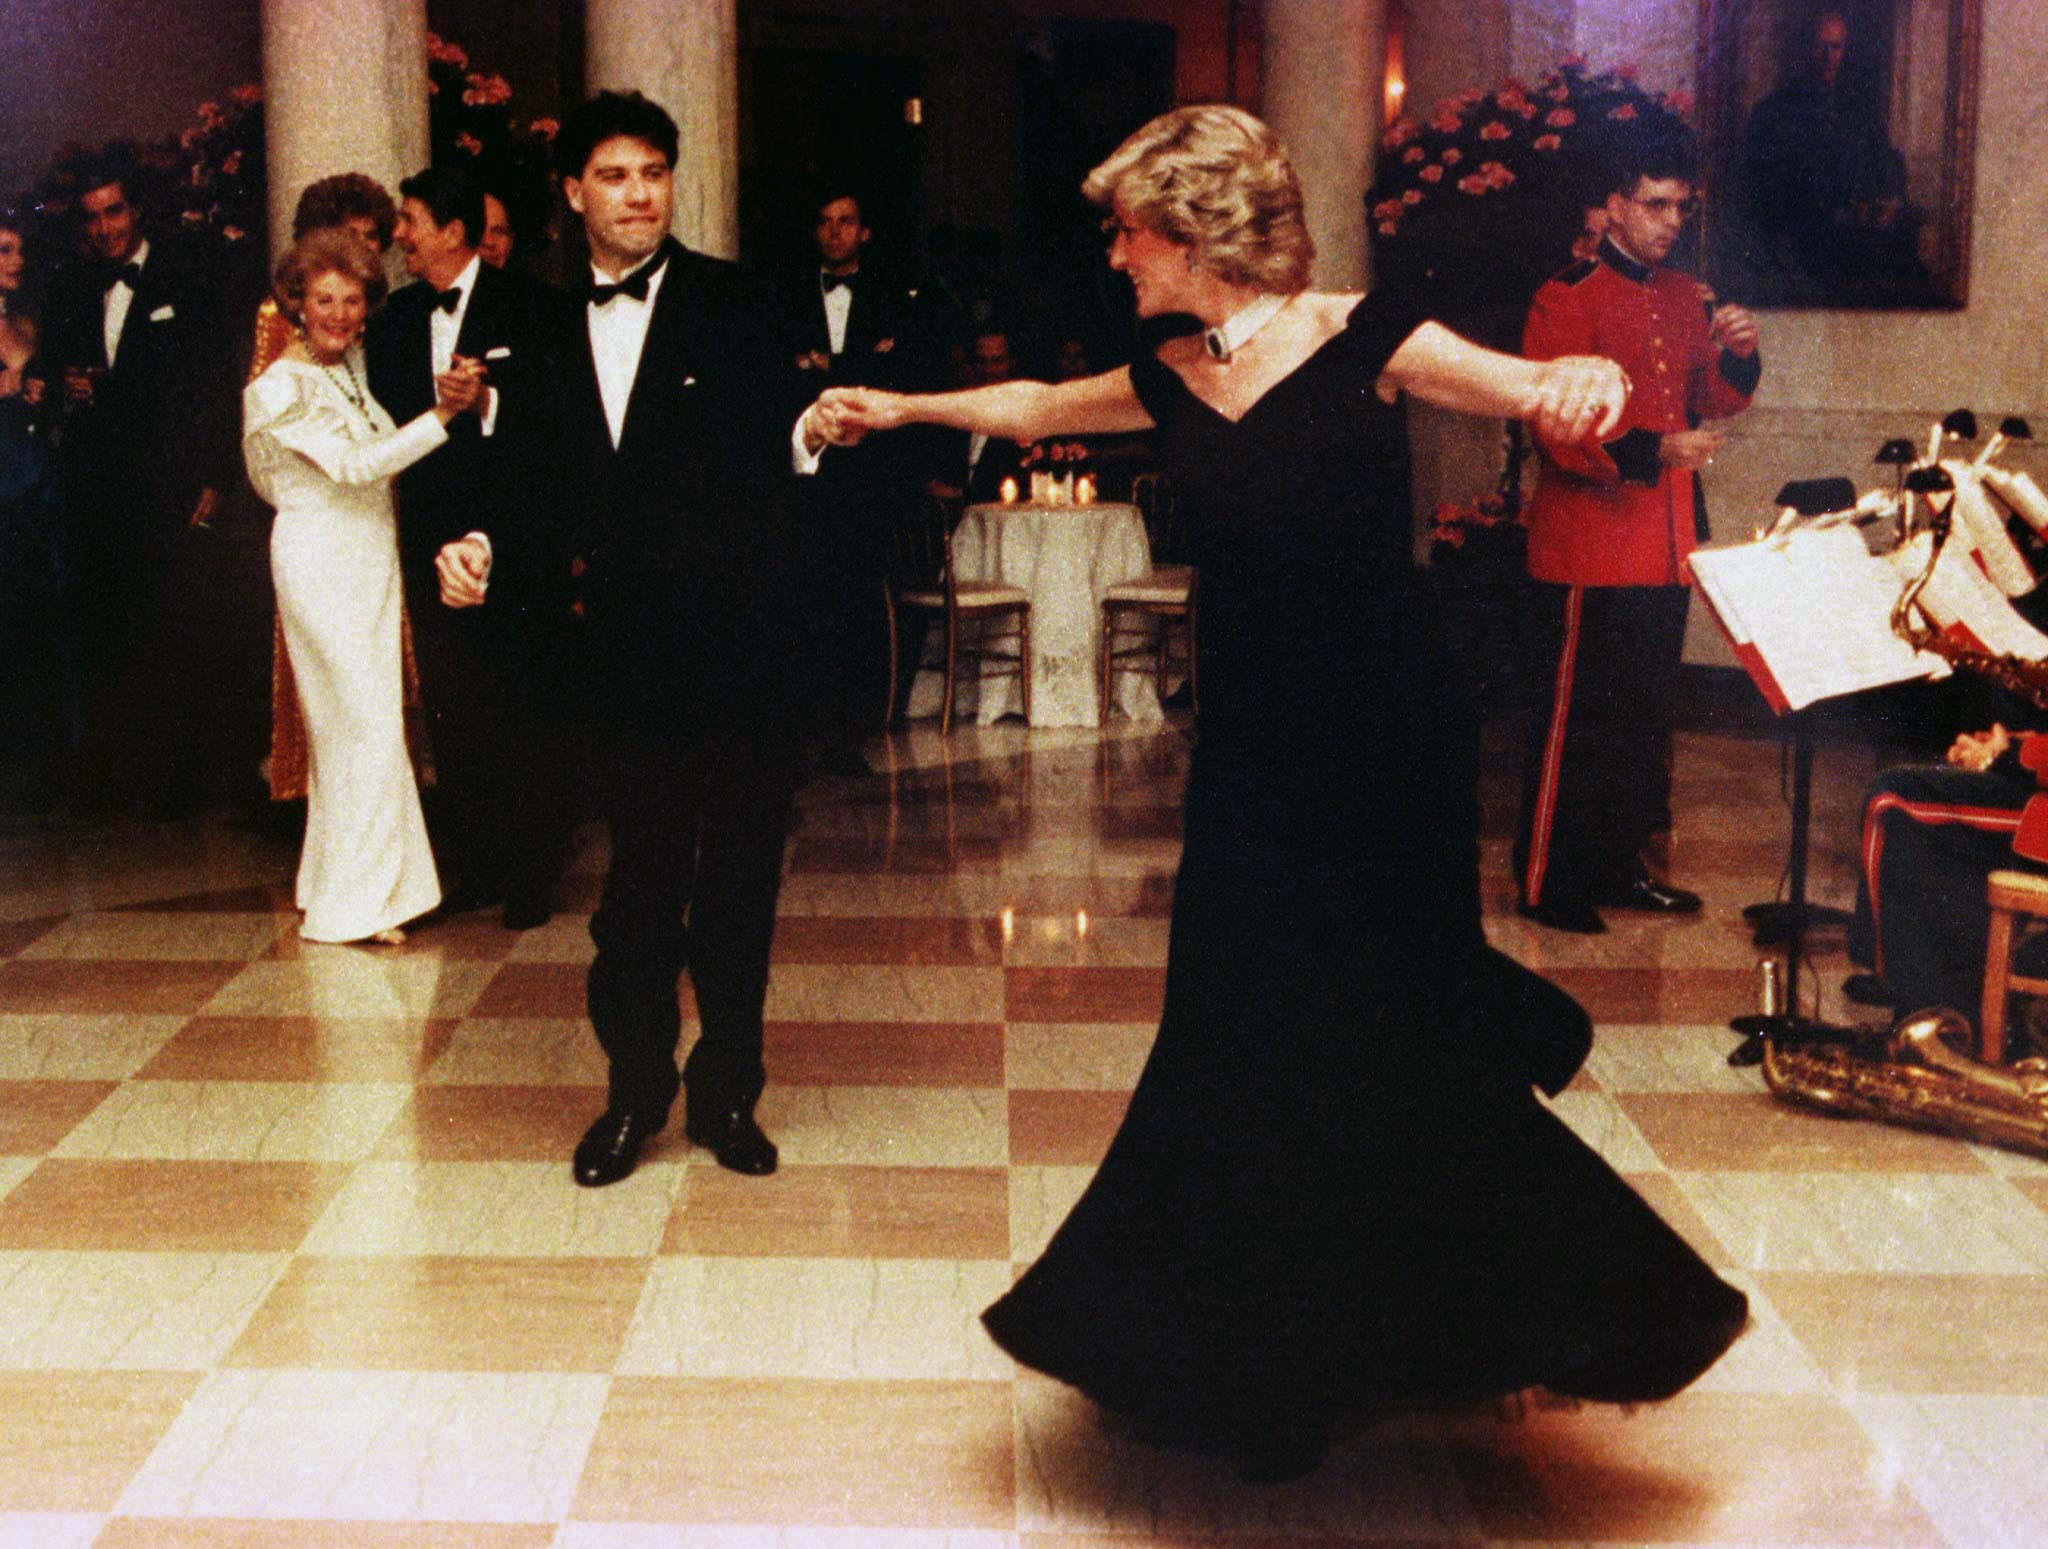 NOVEMBER 1985 FILE PHOTO- Princess Diana is shown wearing a Victor Edelstein gown as she dances at a November 9, 1985 White House dinner with actor John Travolta. The ink-blue Edelstein gown sold for 2,500 during an auction at Christie's auction house in New York June 25, the highest price paid for any one of the 79 gowns worn by the Princess and auctioned to raise funds for AIDS and cancer charities in Britain and the United States.  DIANA - RTR4SM0